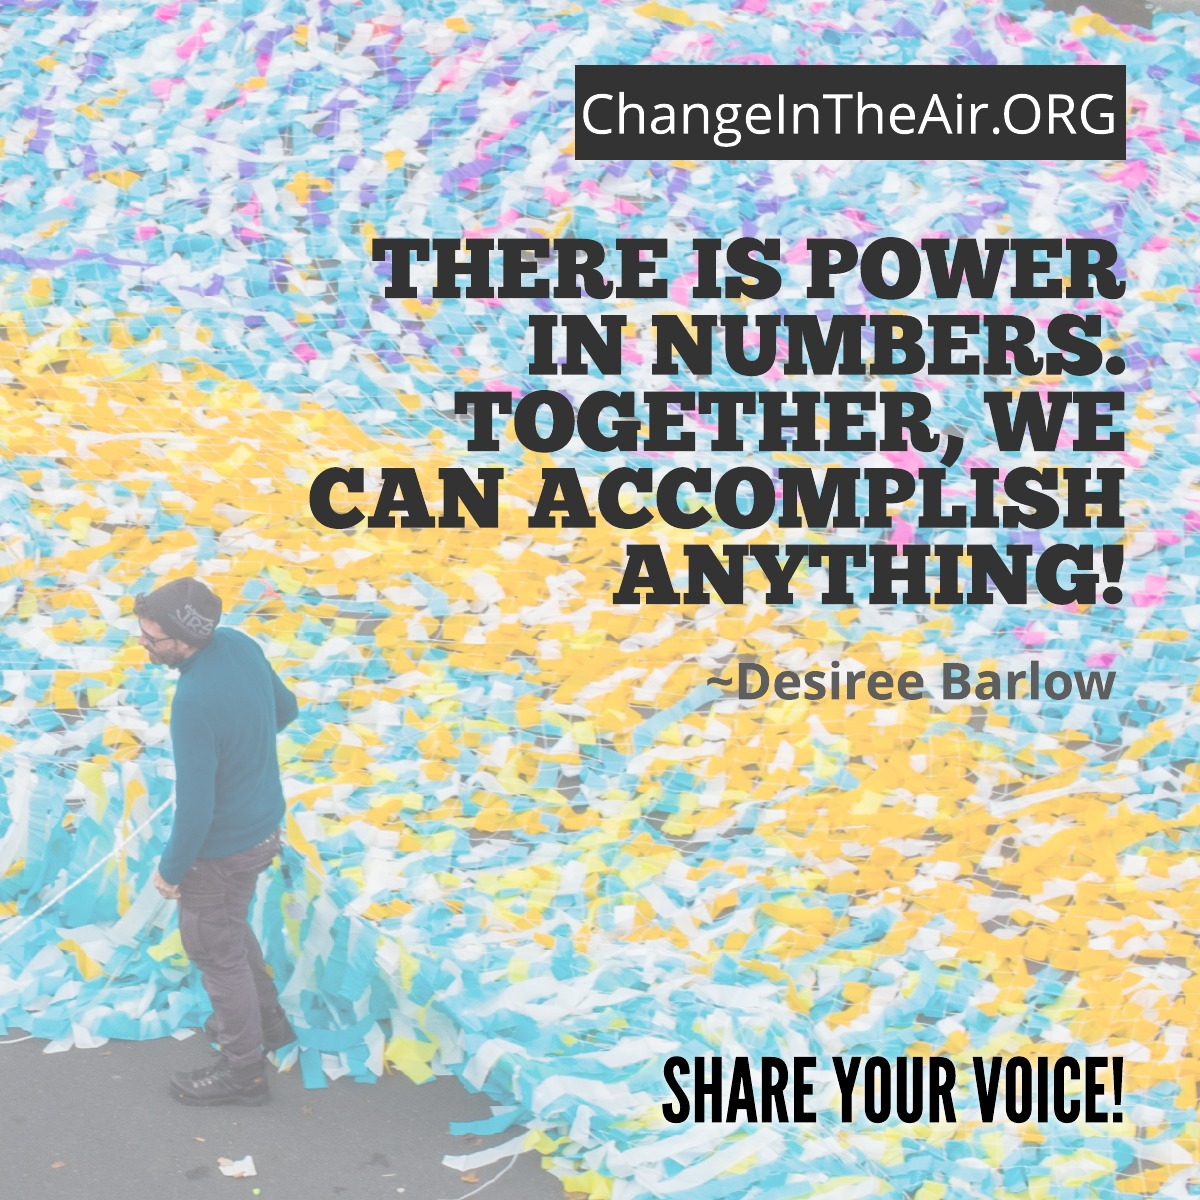 Change in the Air message. There is power in numbers. Together, we can accomplish anything!